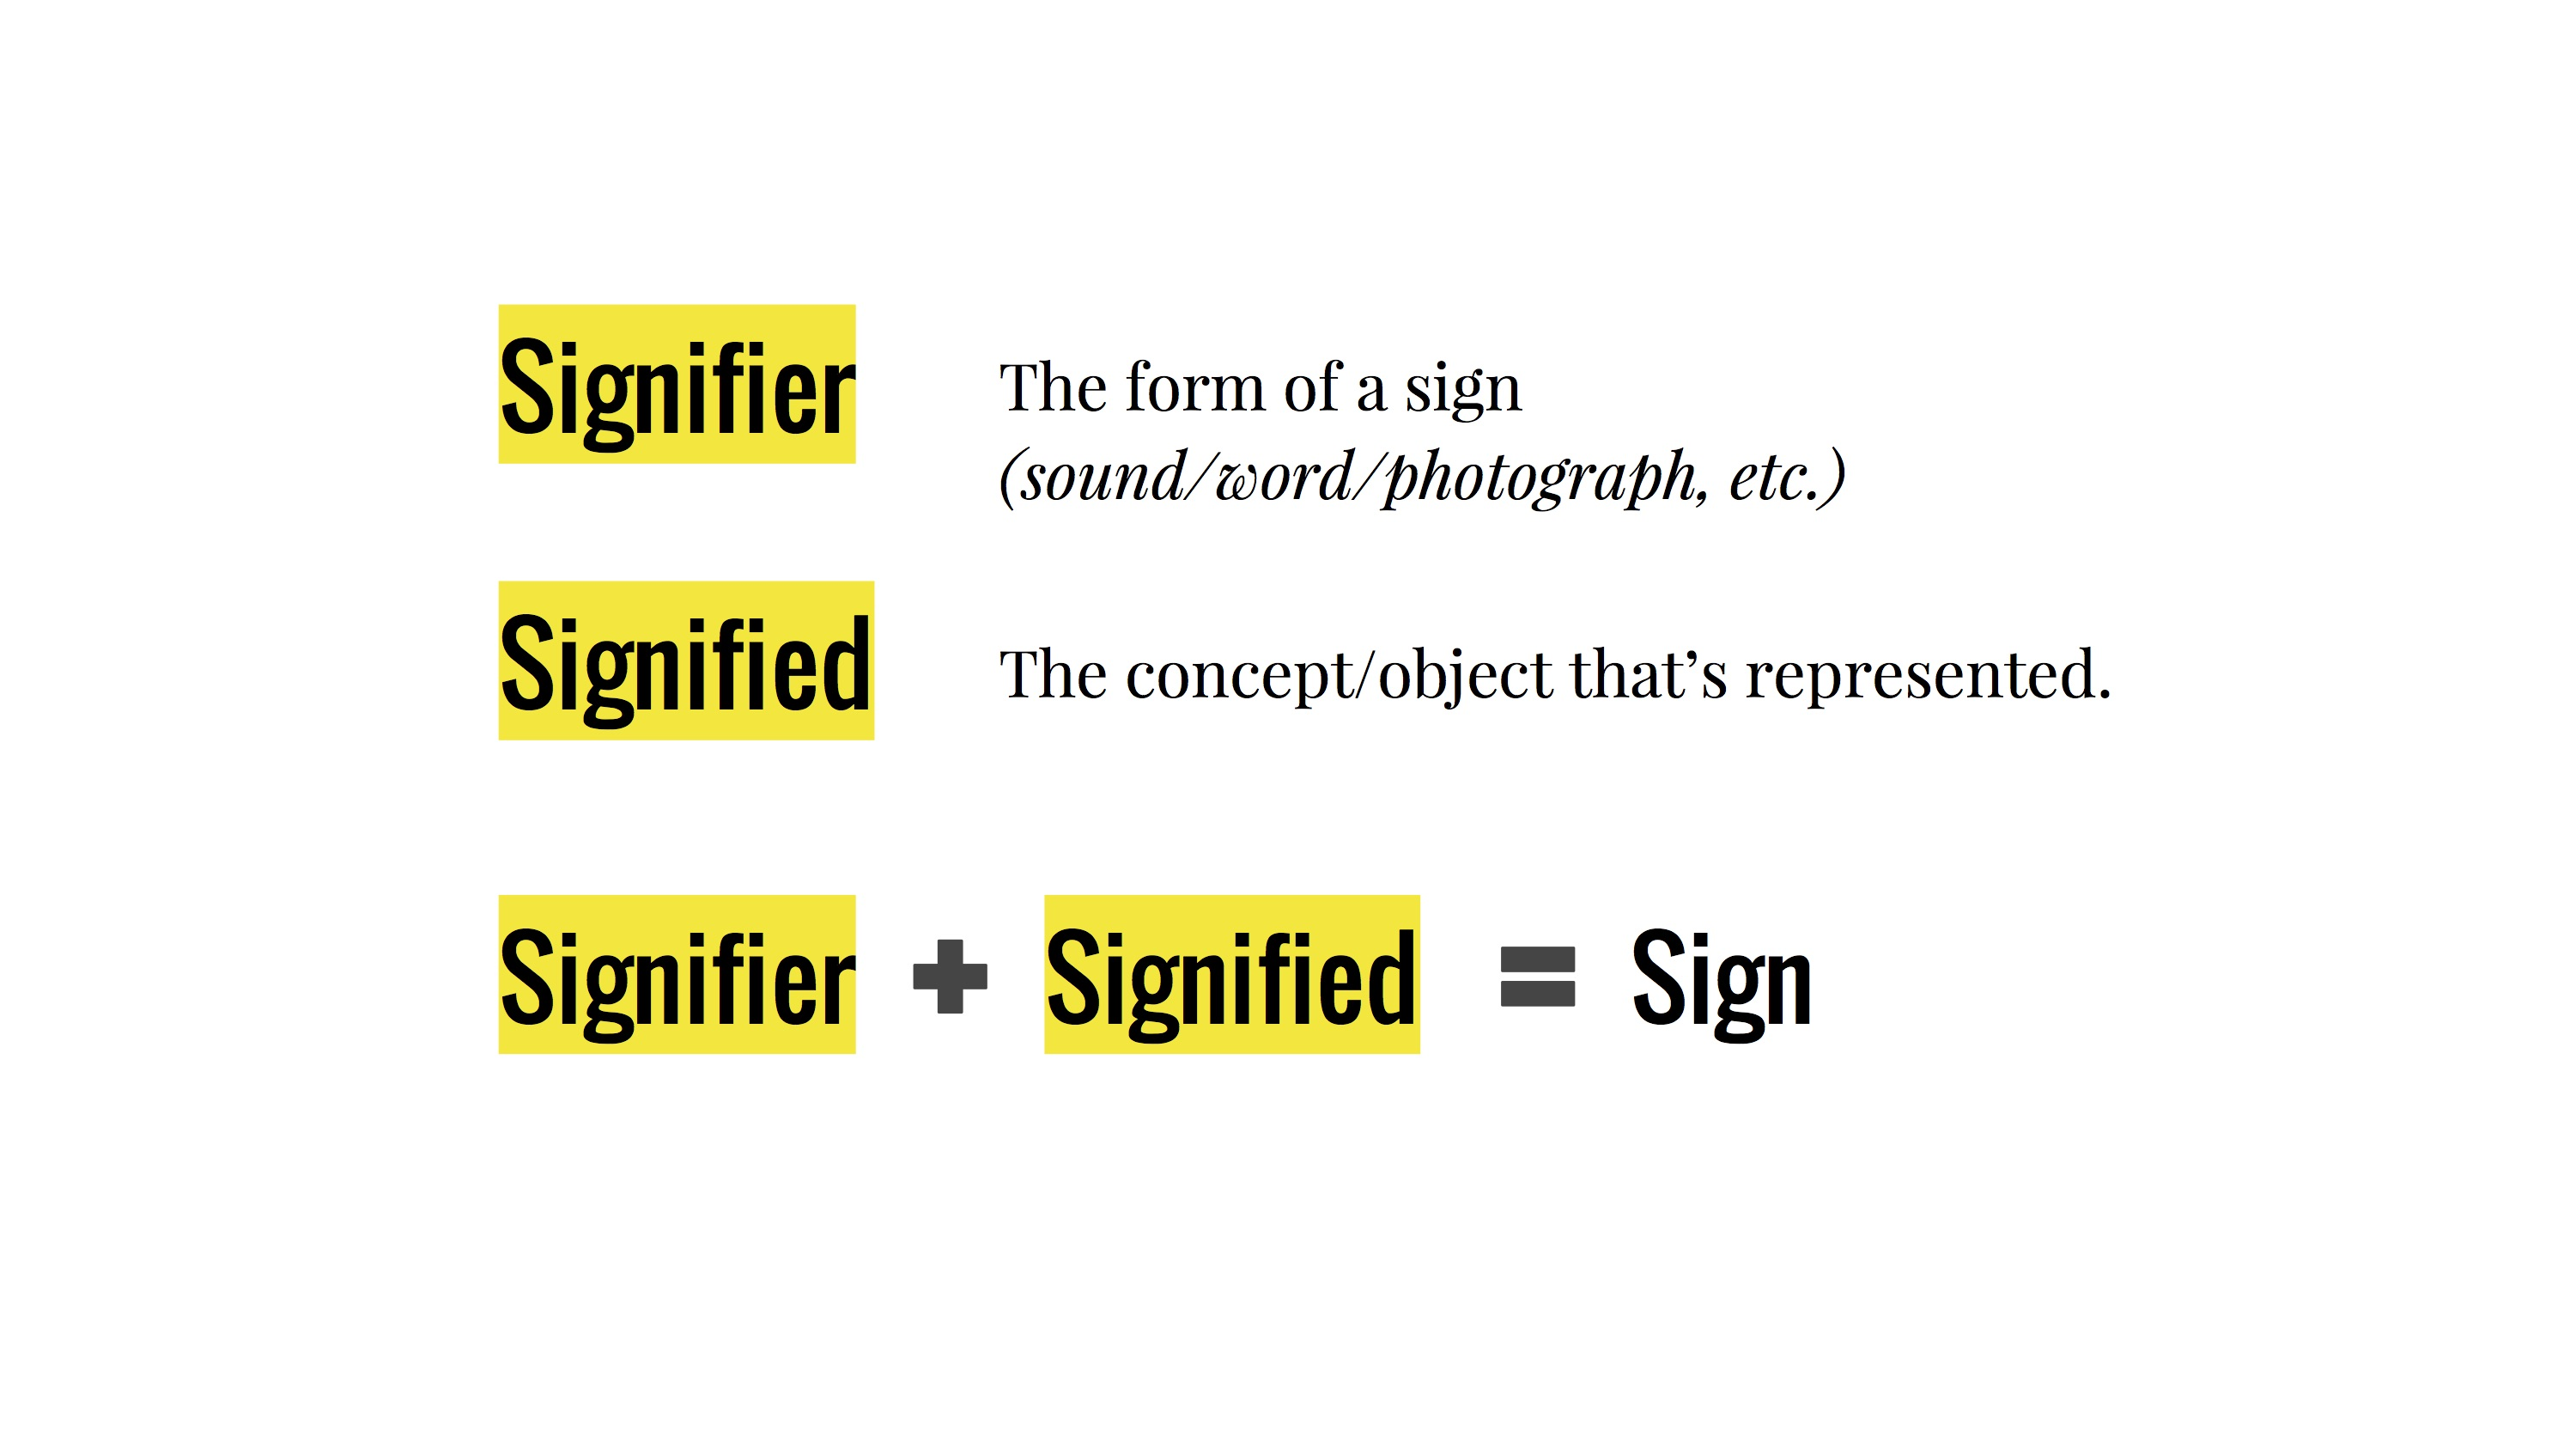 Semiotic Signs Symbols And Ways Of Meaning Artsy Wallflower